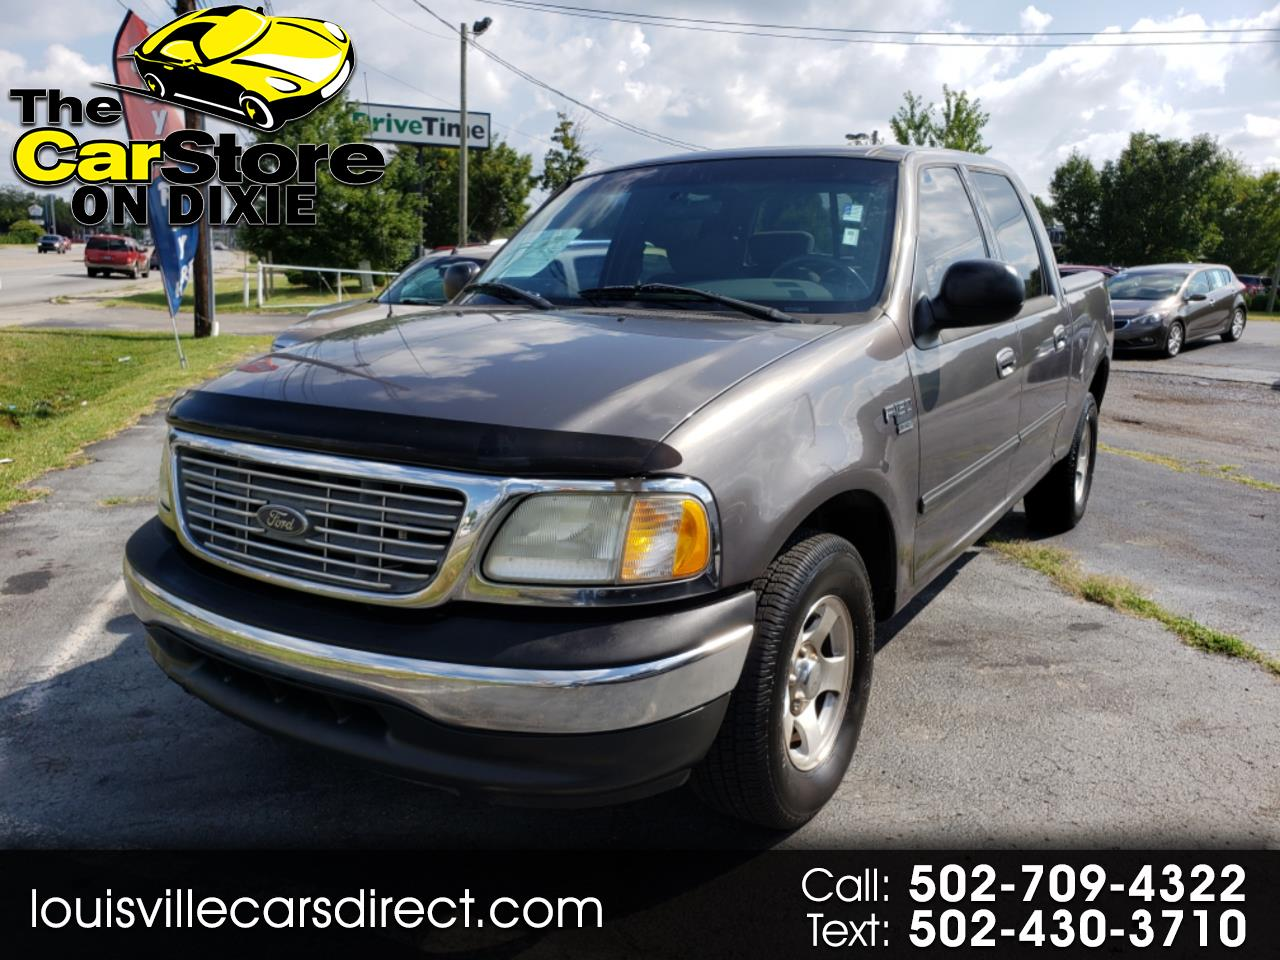 Cars For Sale Louisville Ky >> Used Cars For Sale Louisville Ky 40258 The Car Store On Dixie